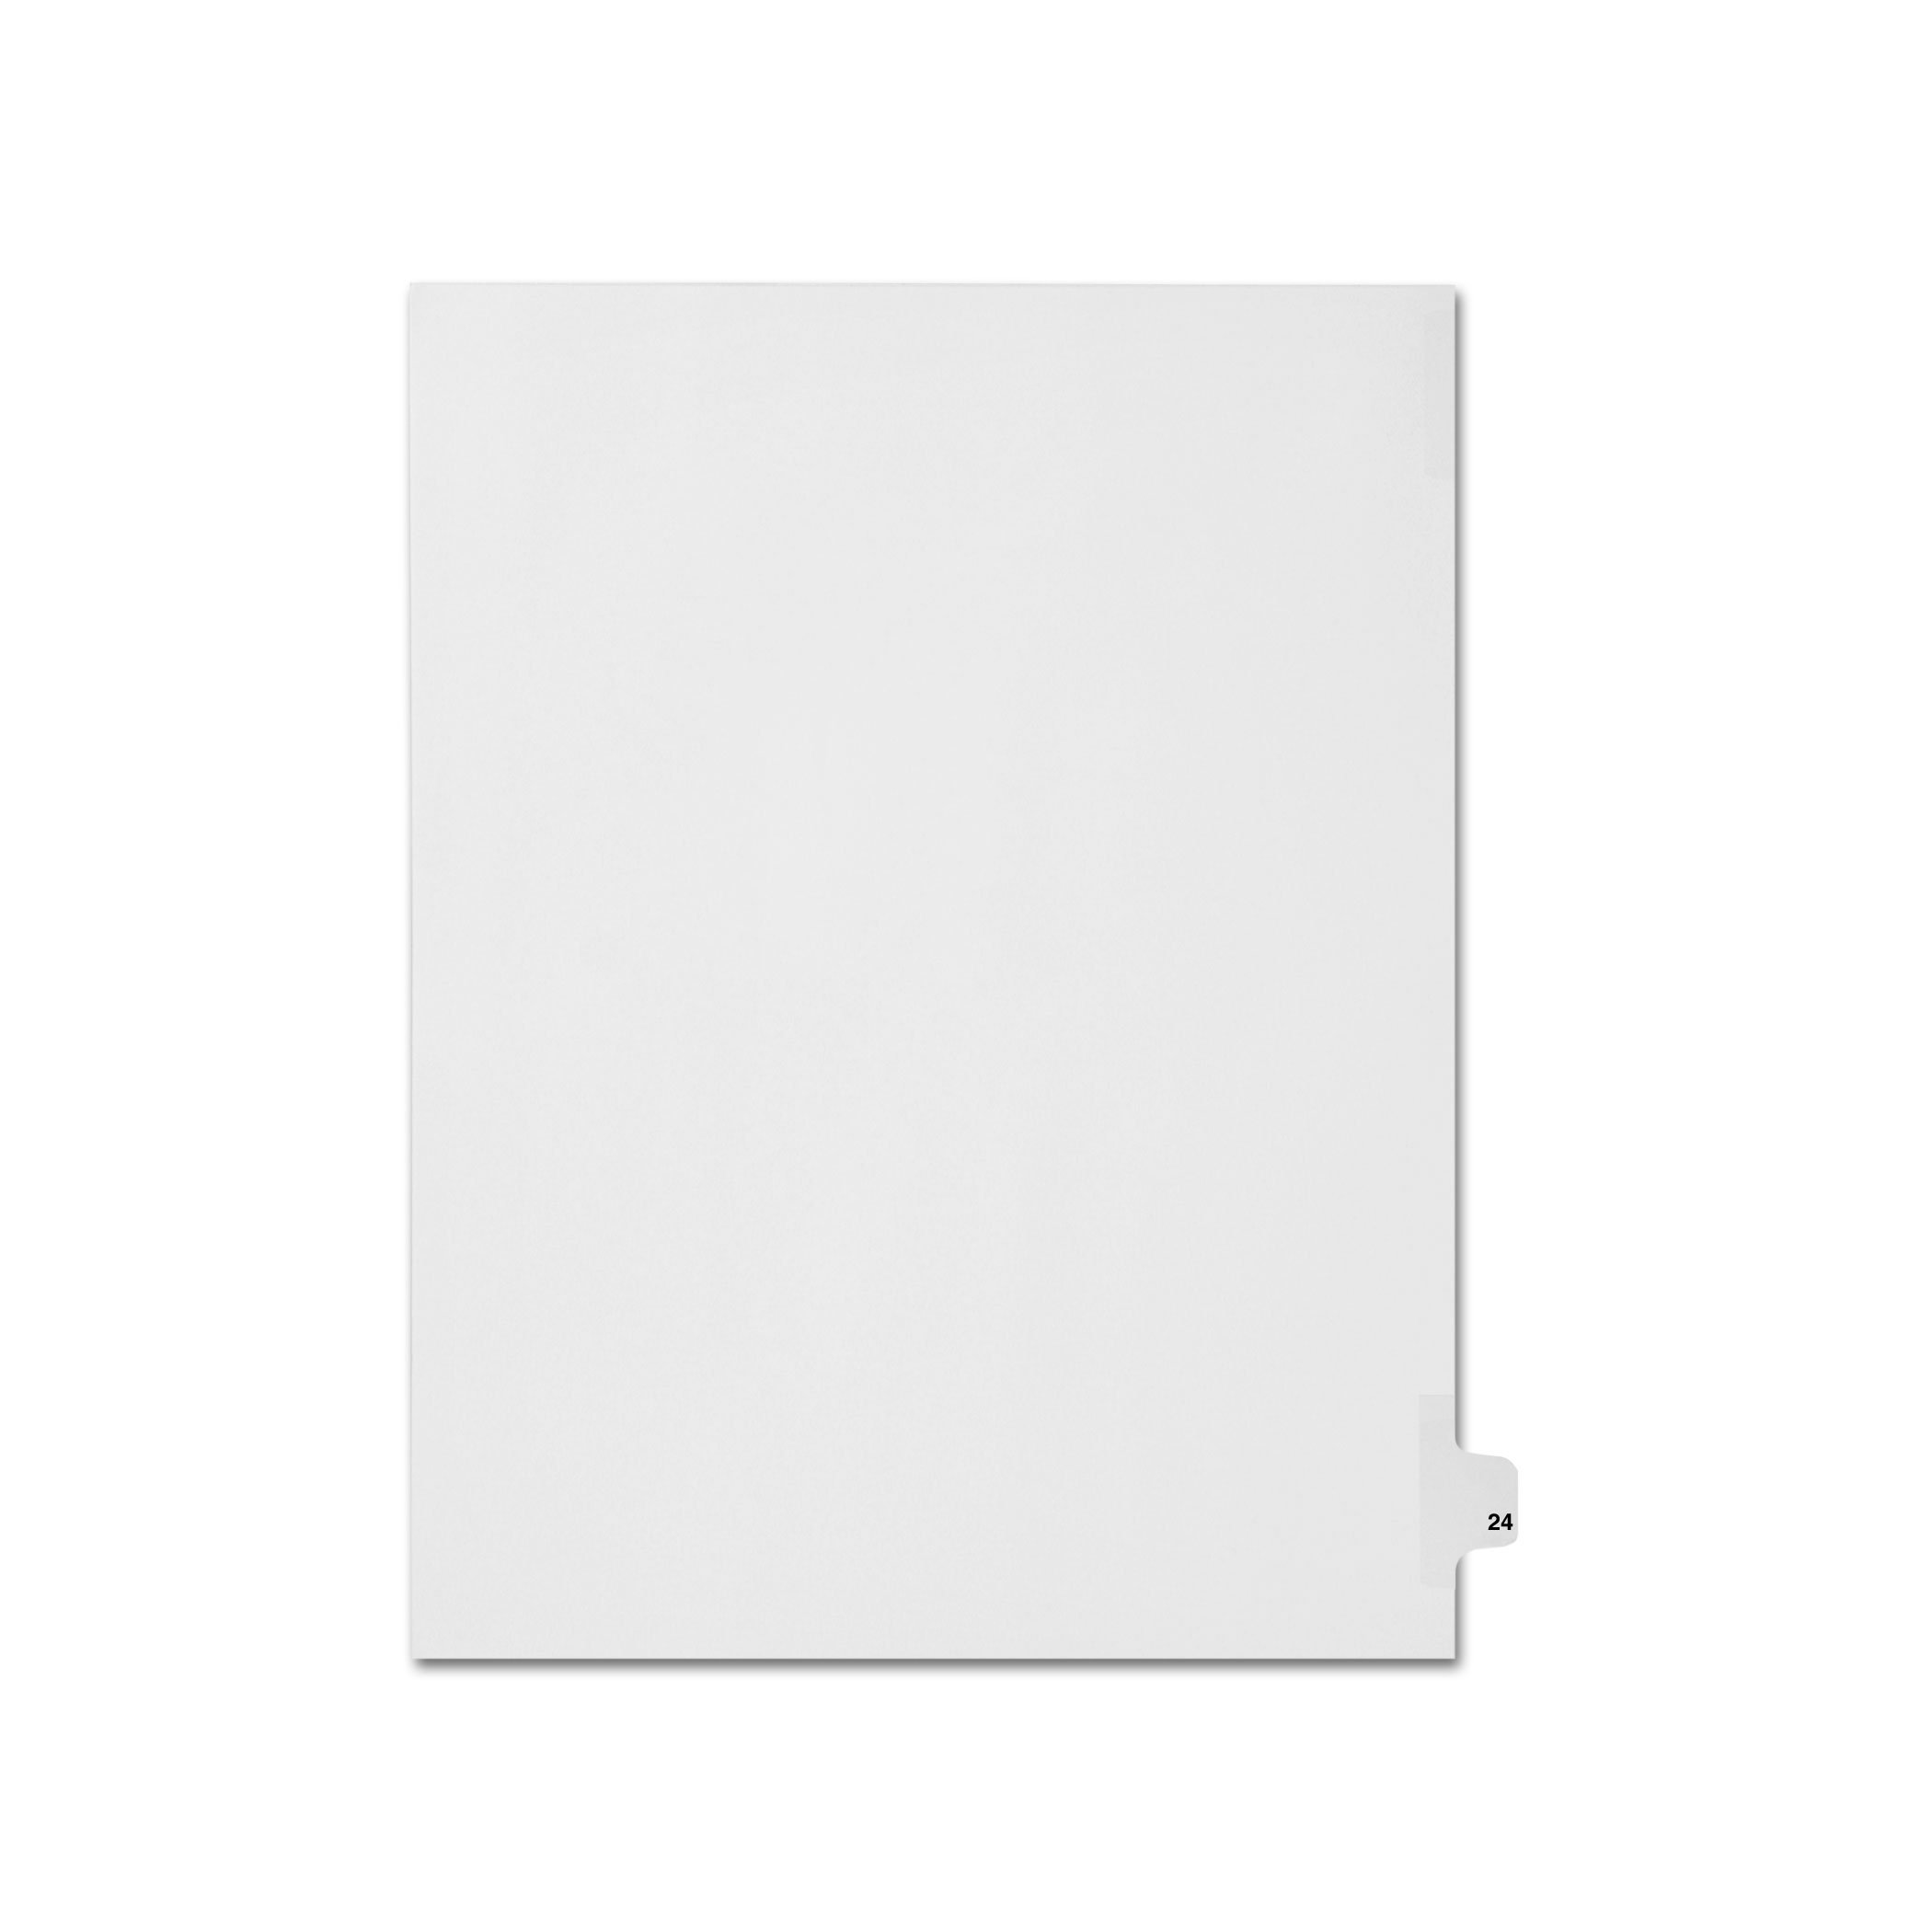 AMZfiling Individual Legal Index Tab Dividers, Compatible with Avery- Number 24, Letter Size, White, Side Tabs, Position 24 (25 Sheets/pkg)